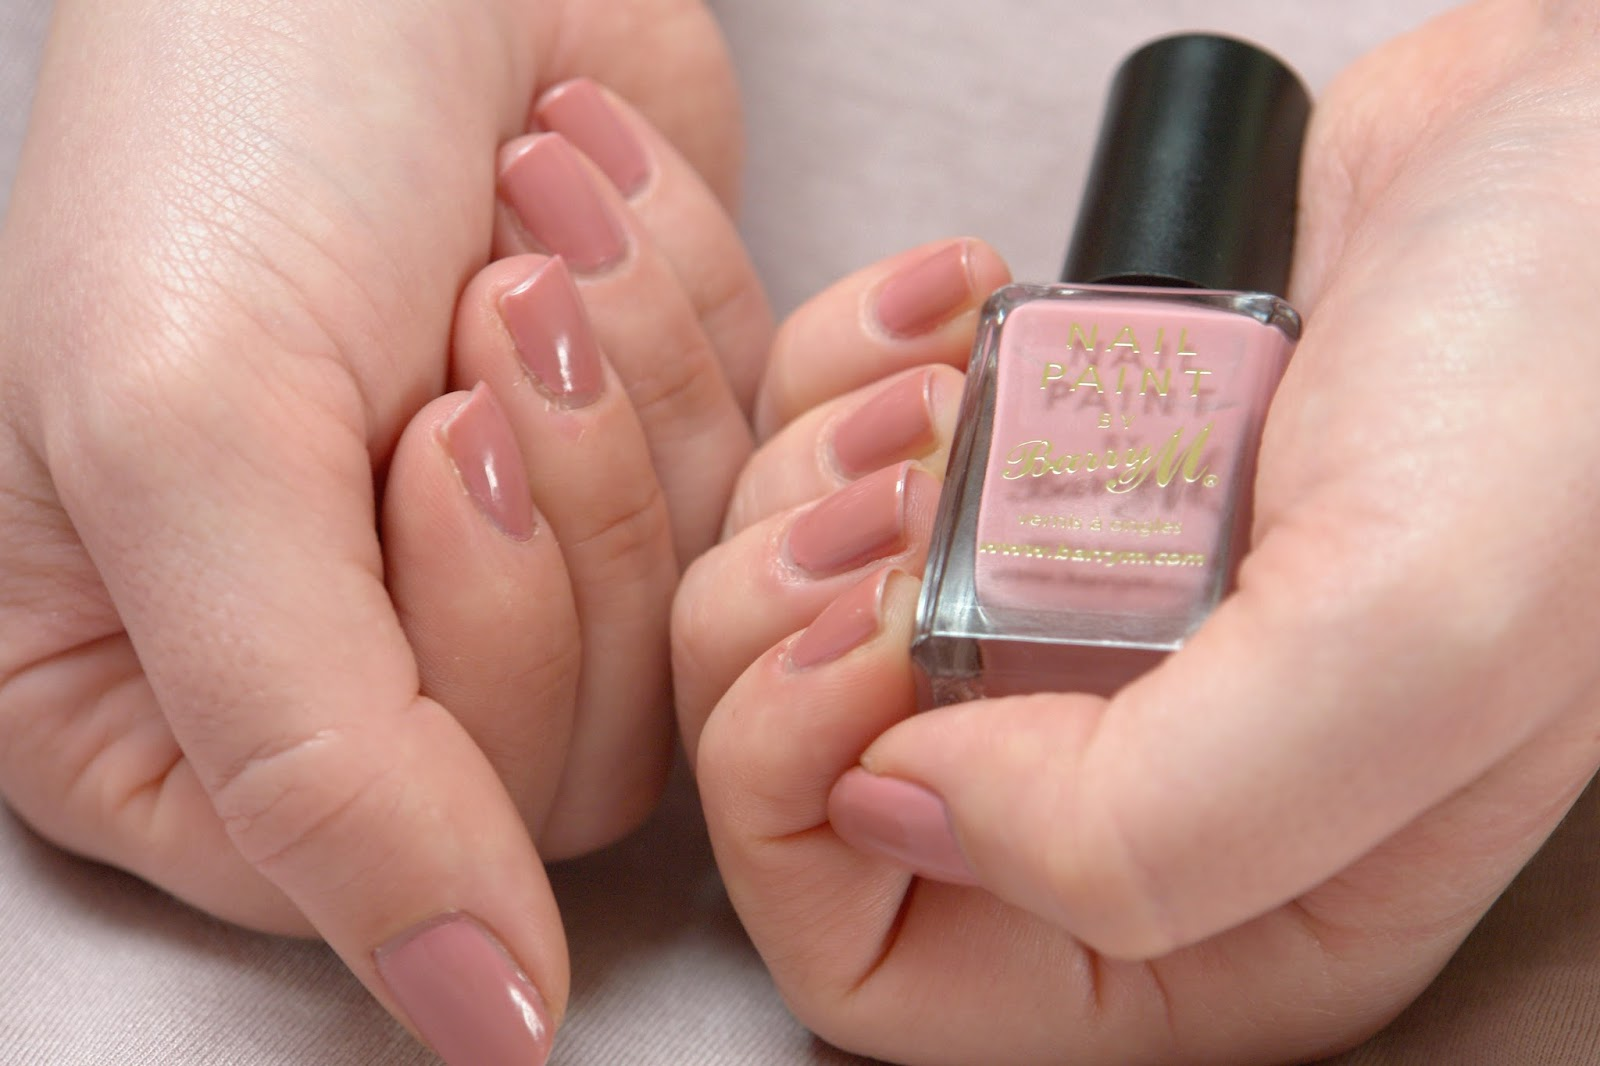 NAILS: Barry M Ballerina, Barry M, nail polish, nails, NOTD, pink, swatches, beauty blog, blogger